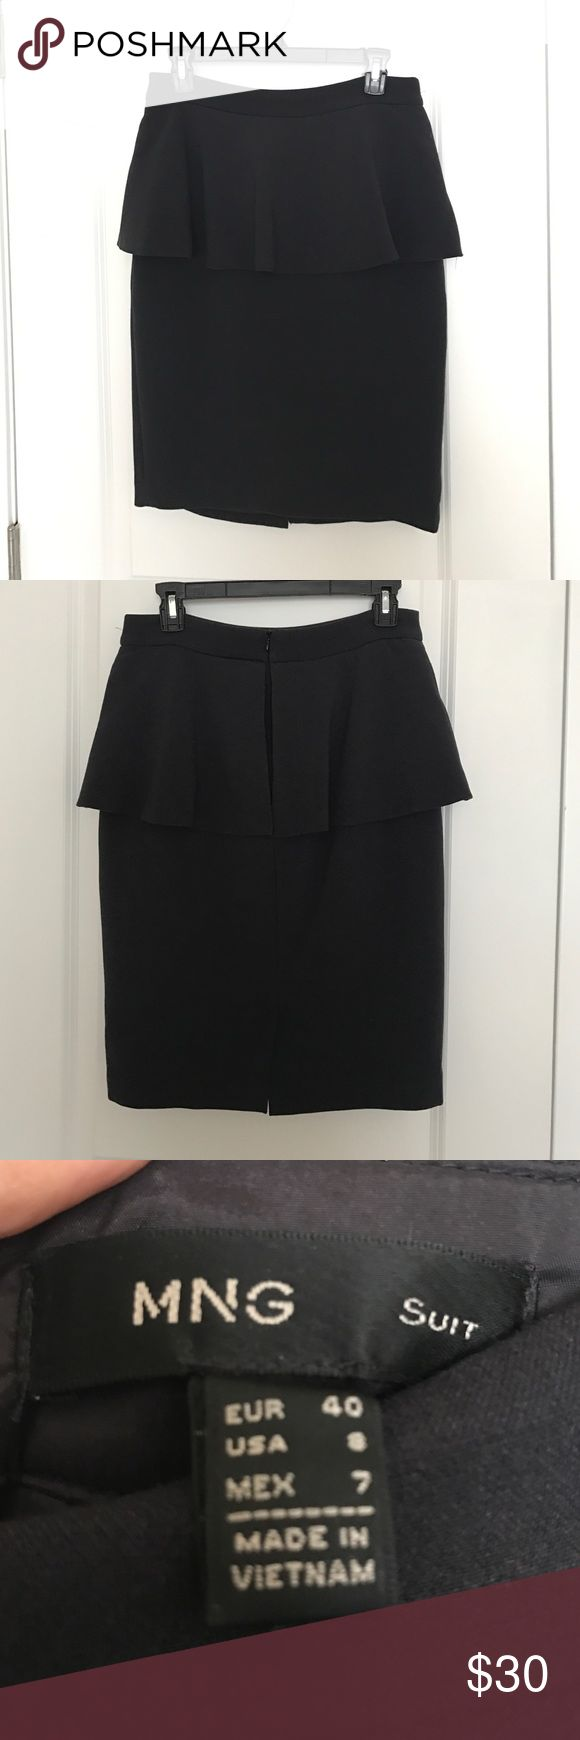 Beautifully made Mango skirt perfect for work! This navy skirt is very feminine and looks amazing for work. Not your everyday pencil skirt. It will get you lots of compliments! Perfect condition worn a couple of times Mango Skirts Pencil